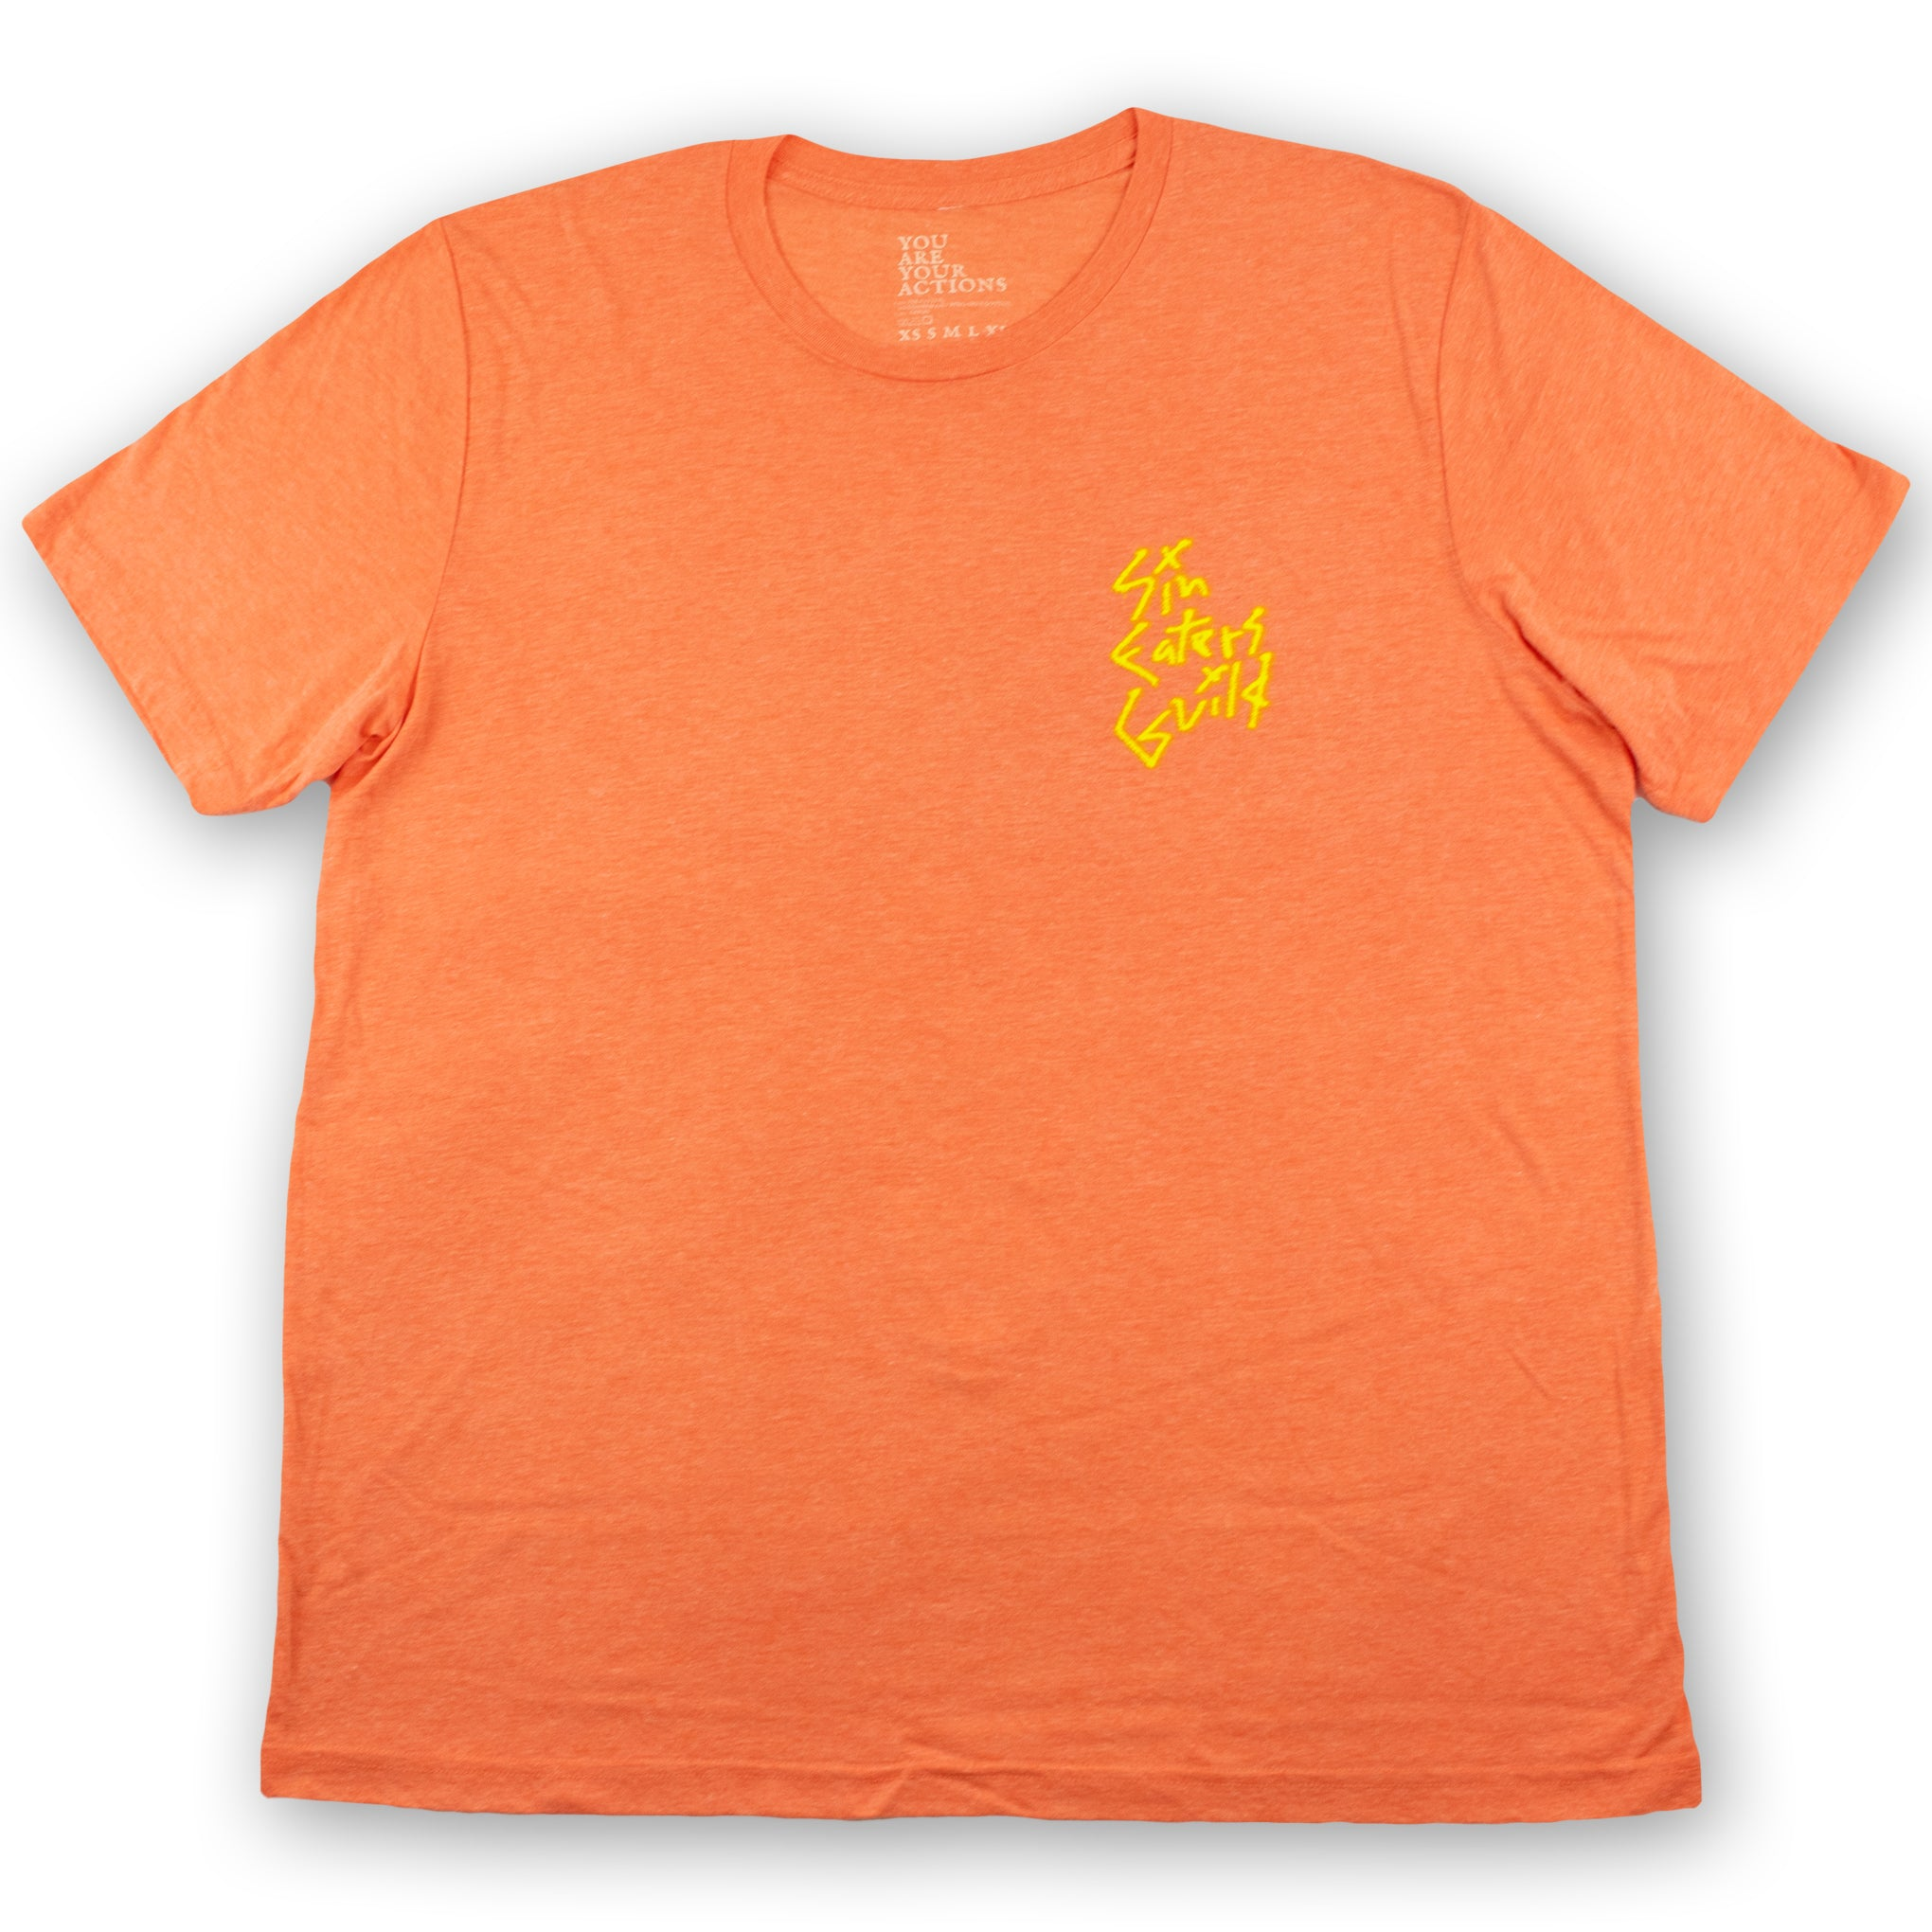 Orange Graff Hanged Man T-Shirt